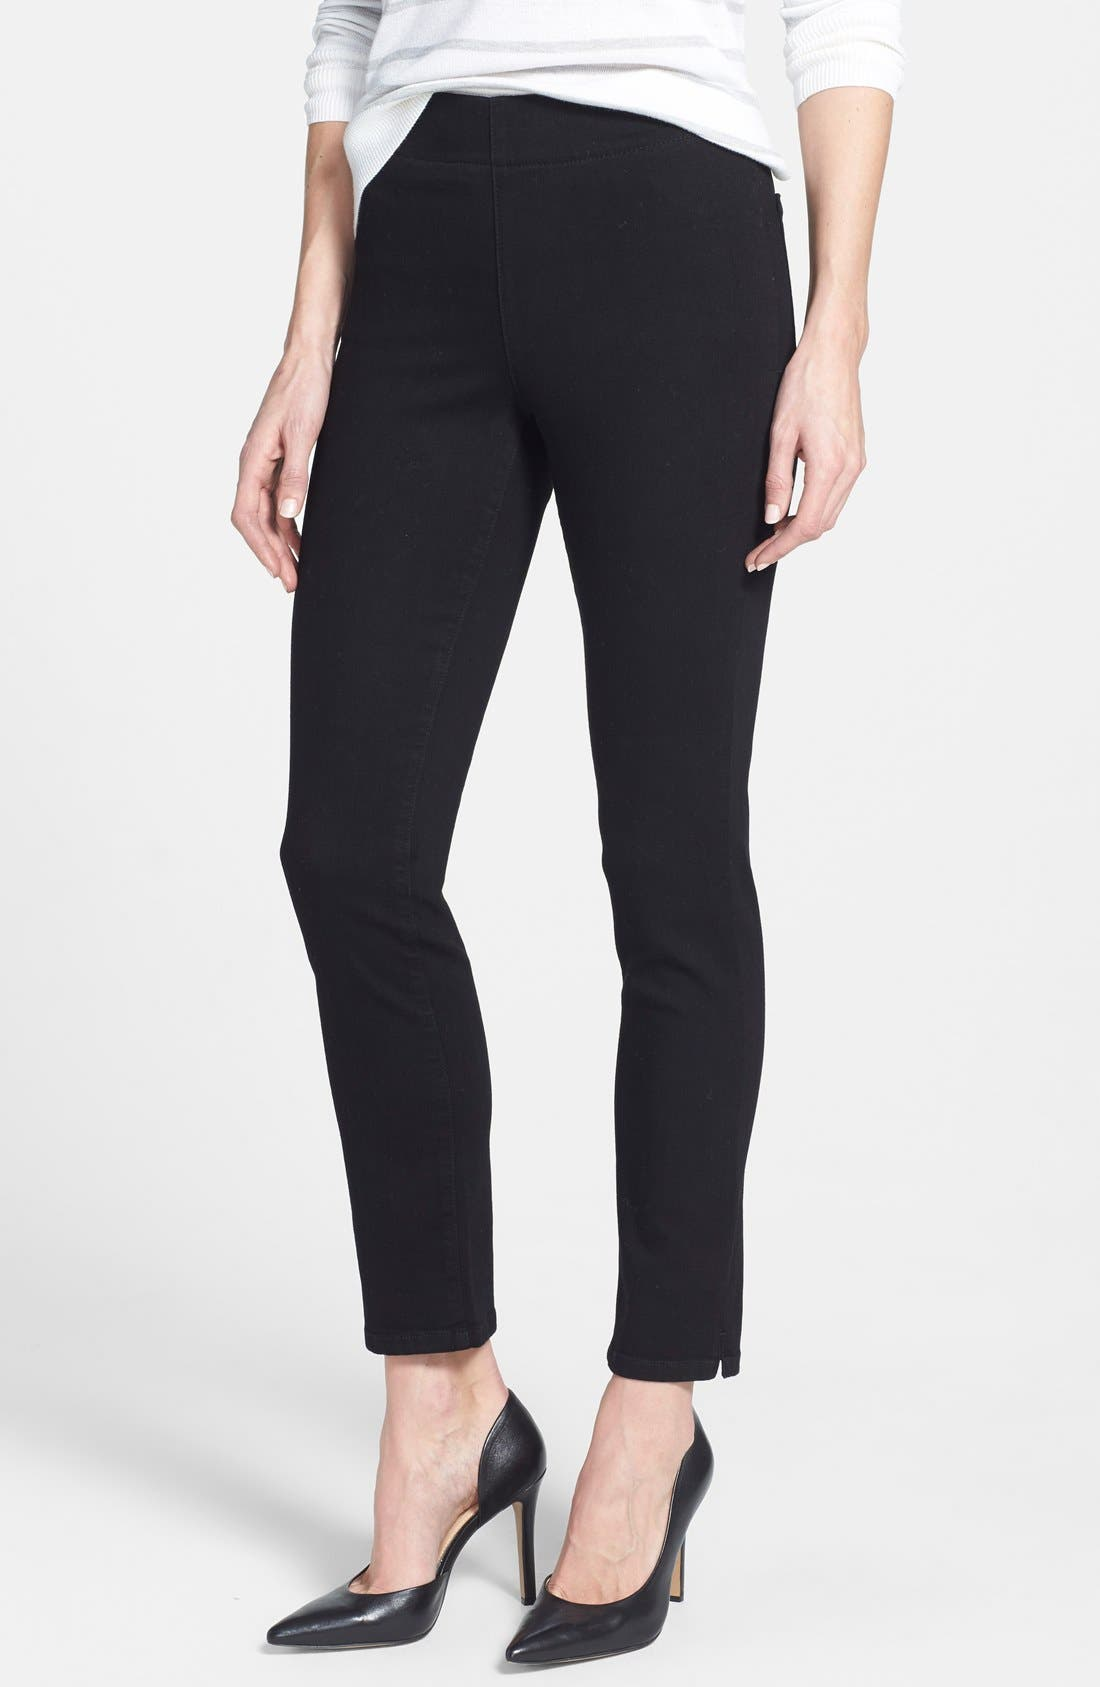 NYDJ Alina Stretch Ankle Jeans (Black) (Regular & Petite)